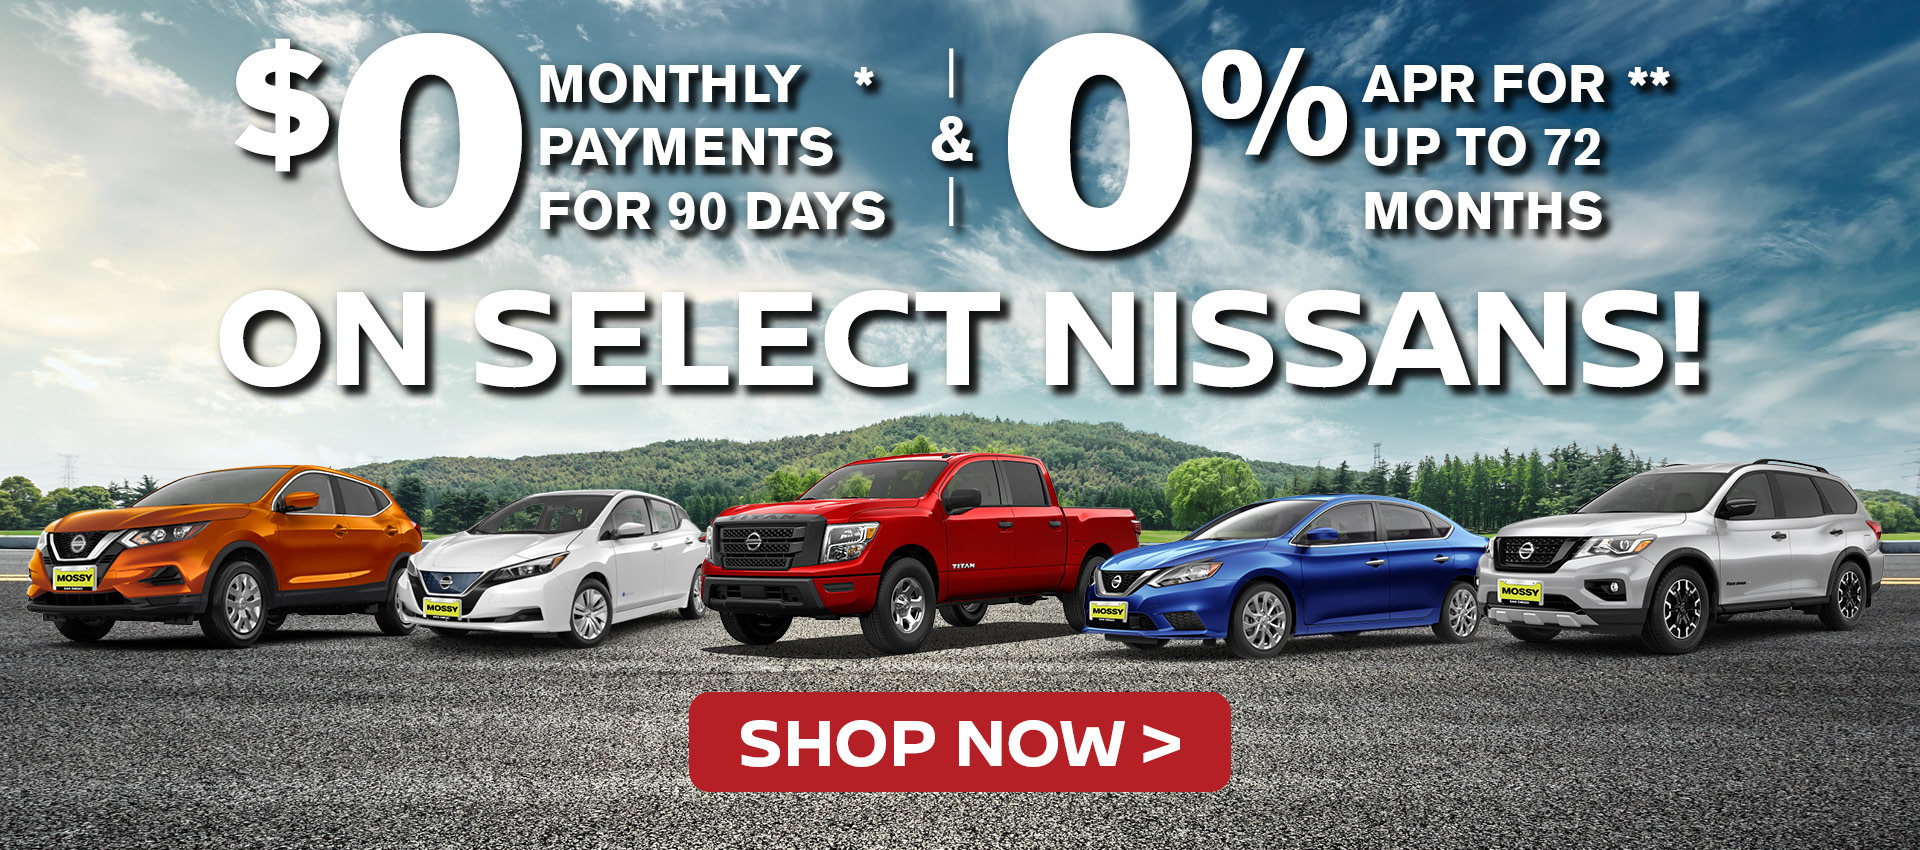 Mossy Nissan - 0% for 72